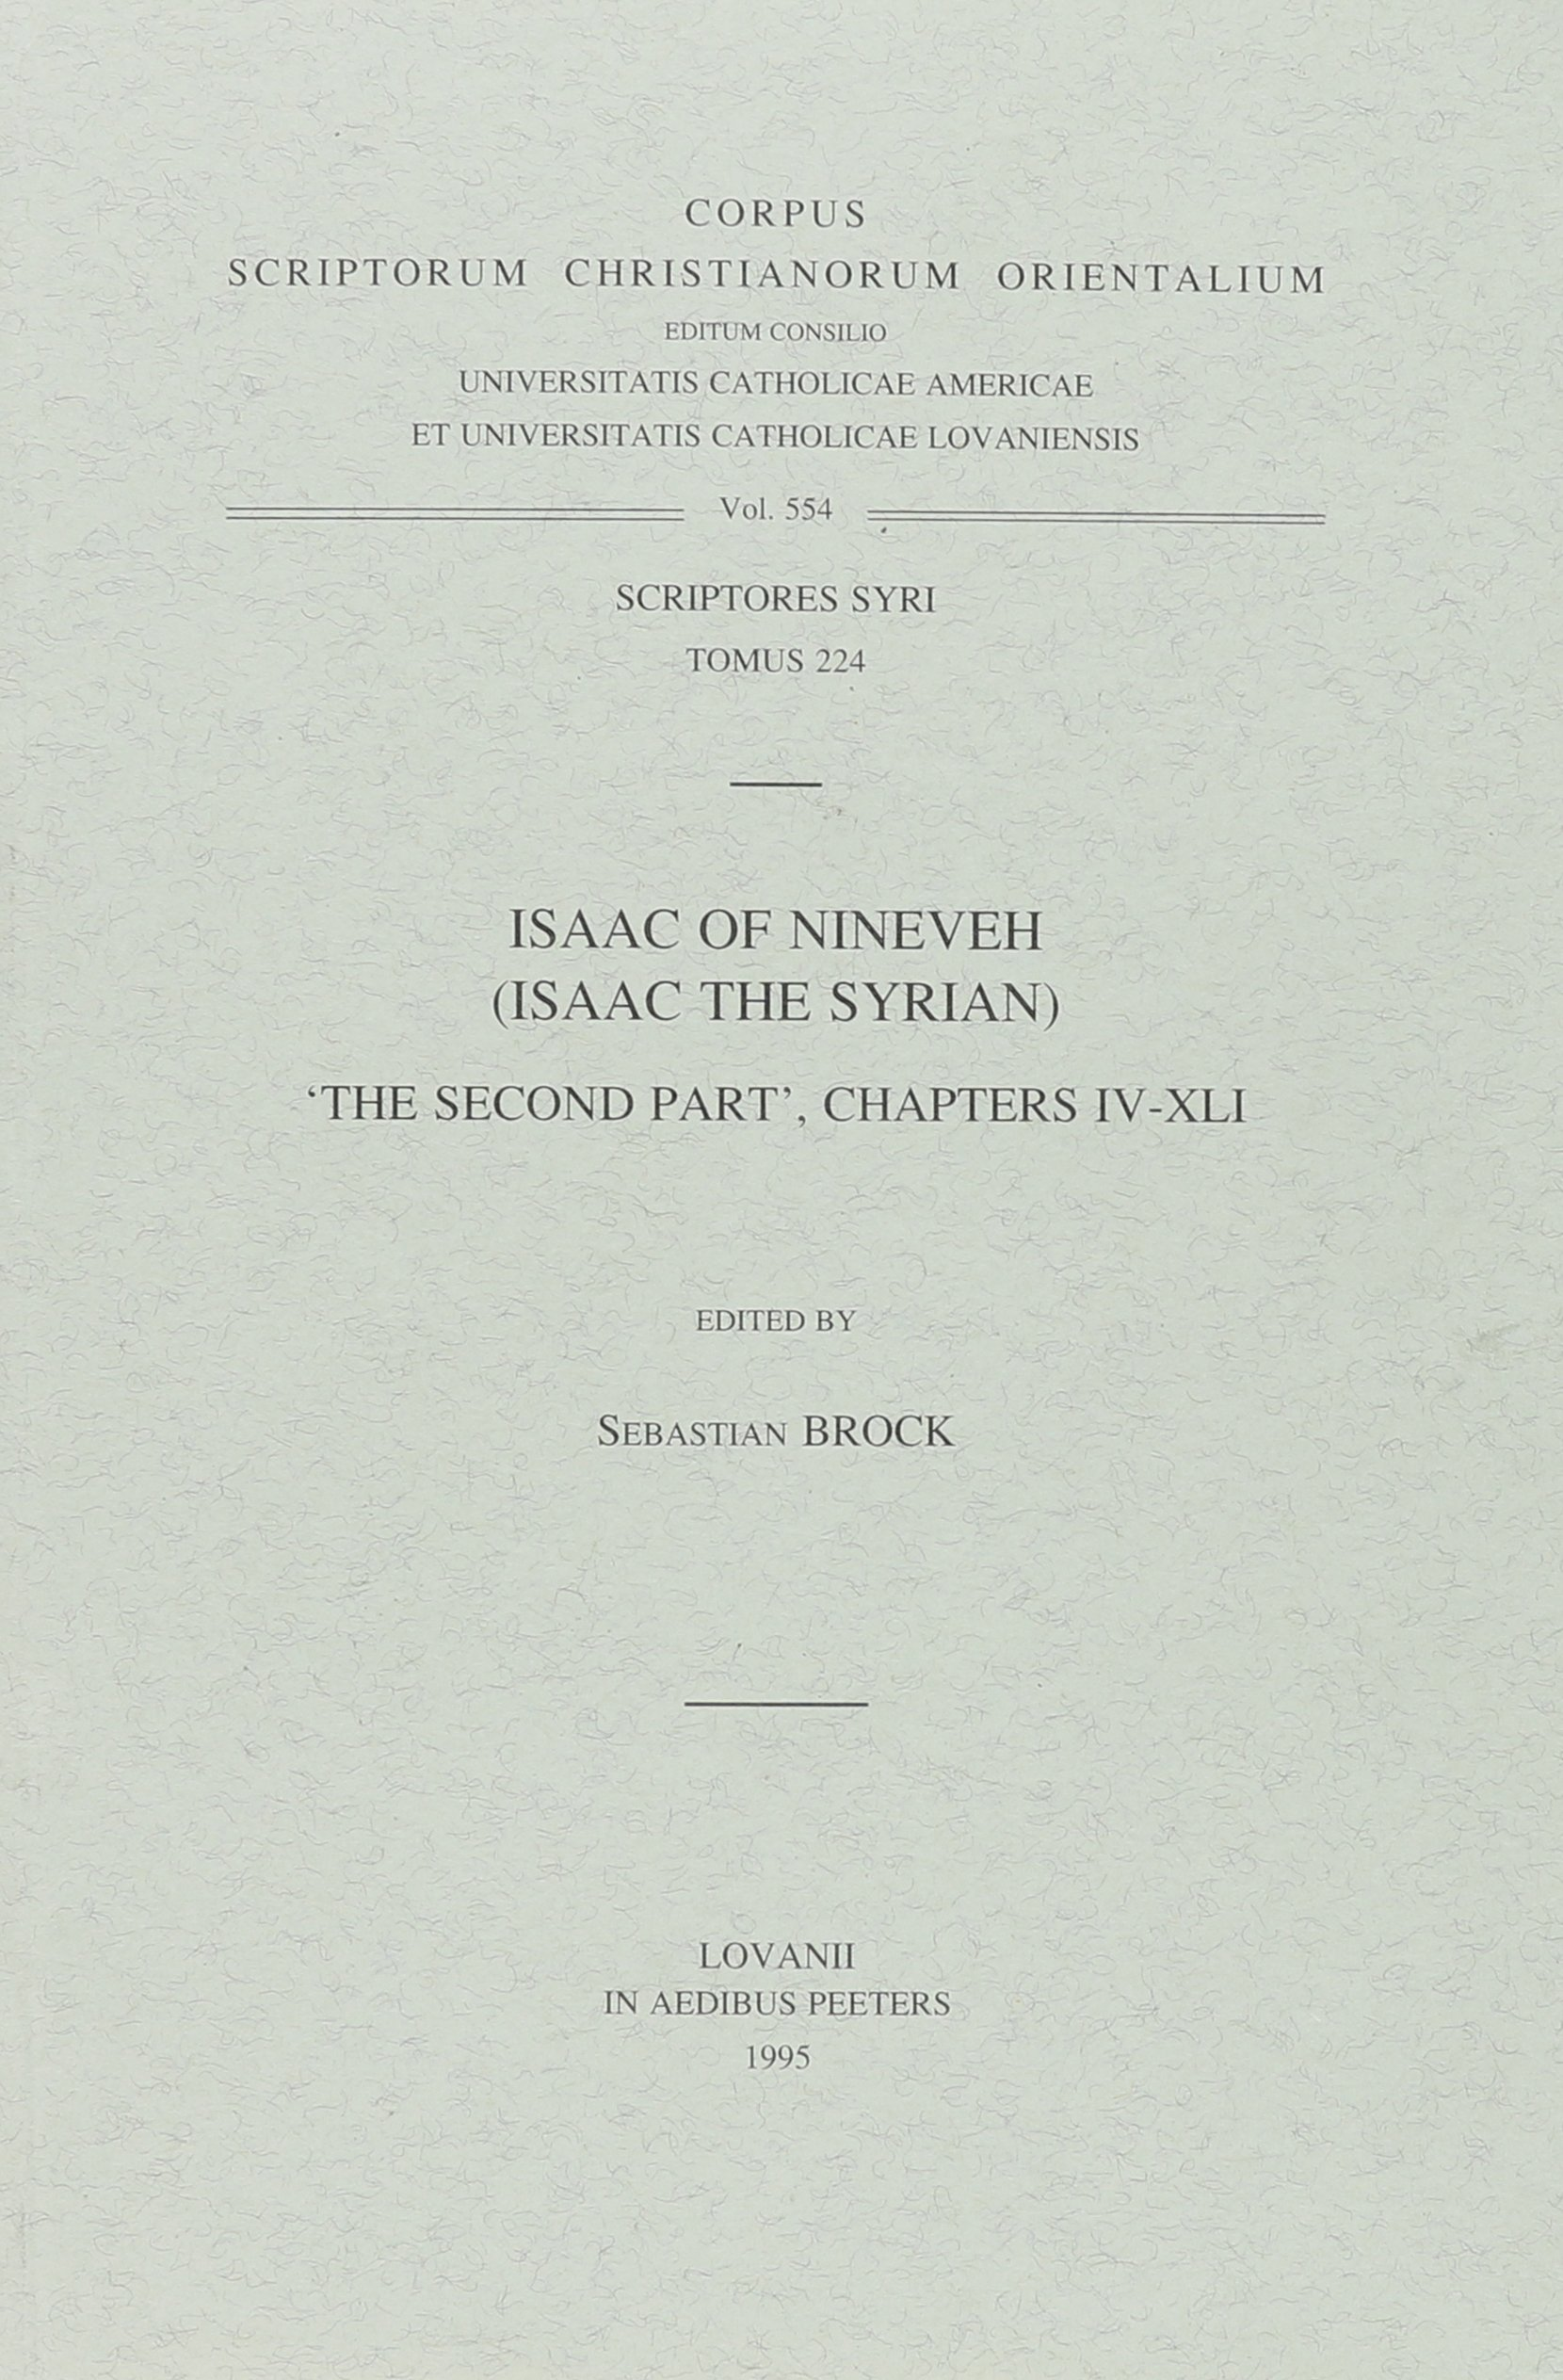 Isaac of Nineveh (Isaac the Syrian). The Second Part, chapters IV-XLI Syr. 224. (Corpus Scriptorum Christianorum Orientalium) (Syriac Edition) by Peeters